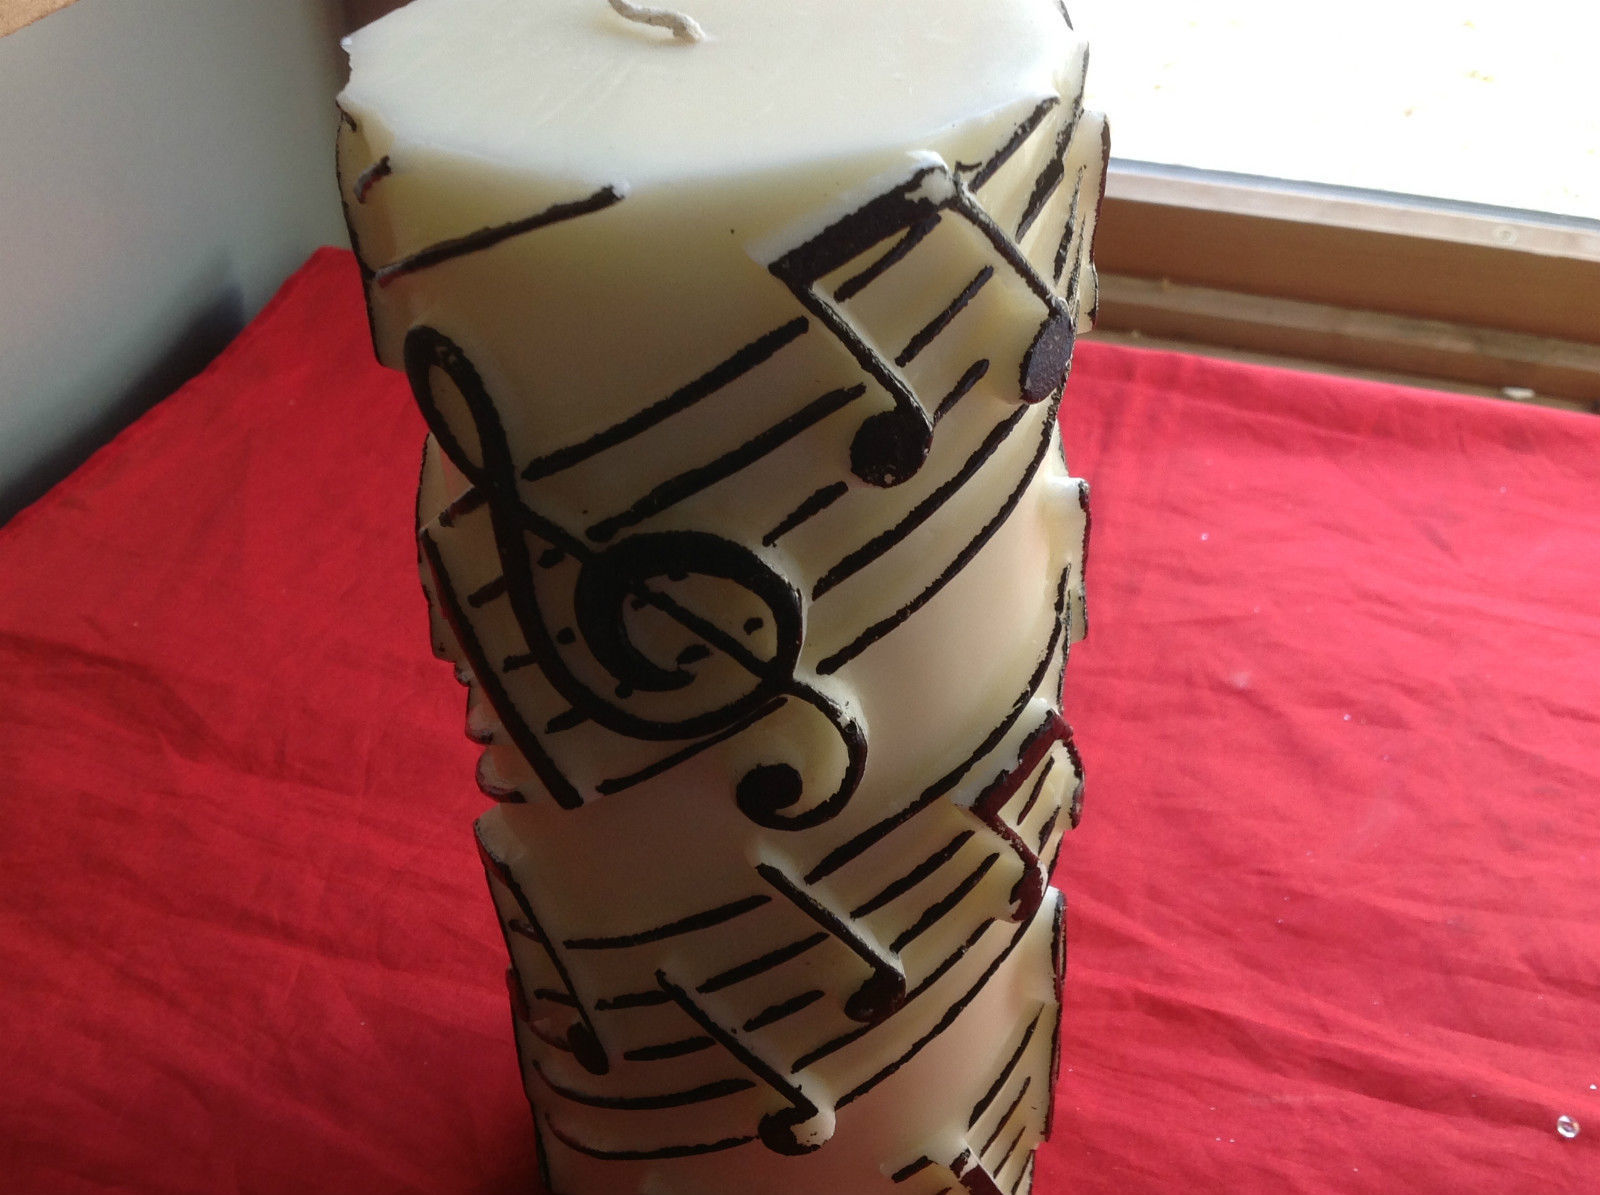 Volcanica Musical Notes Pillar Candle Lead-free Wick Bali Harmony Beeswax Palm